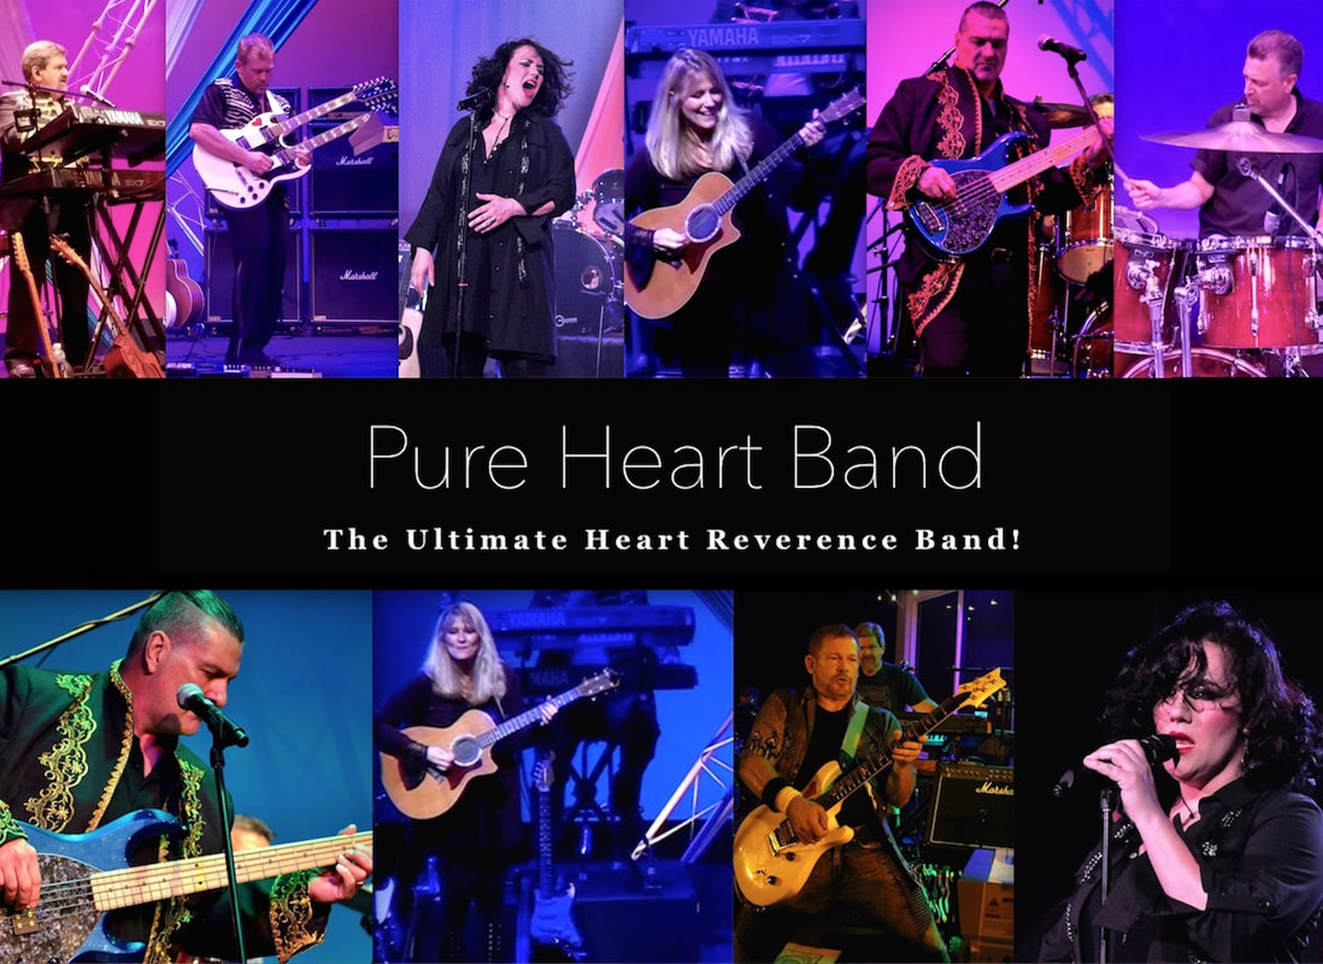 Pure Heart Band plays ultimate tribute to Heart